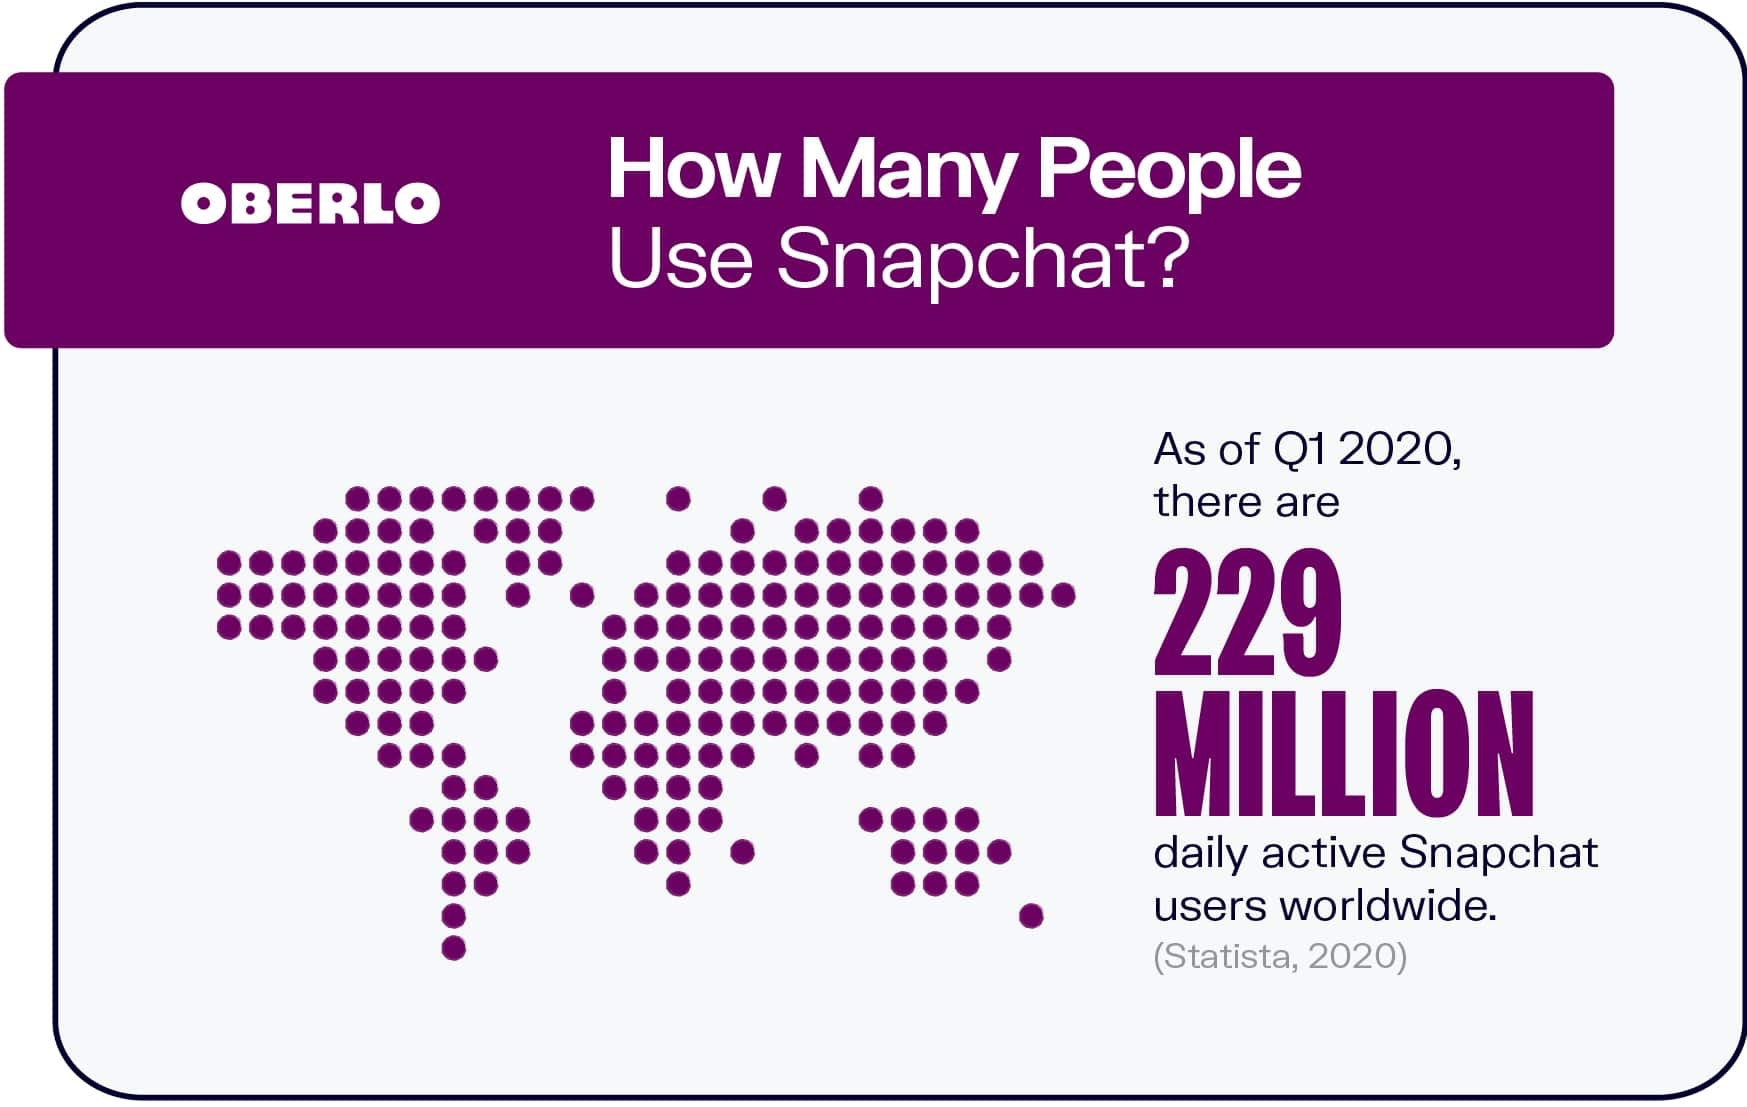 How Many People Use Snapchat?